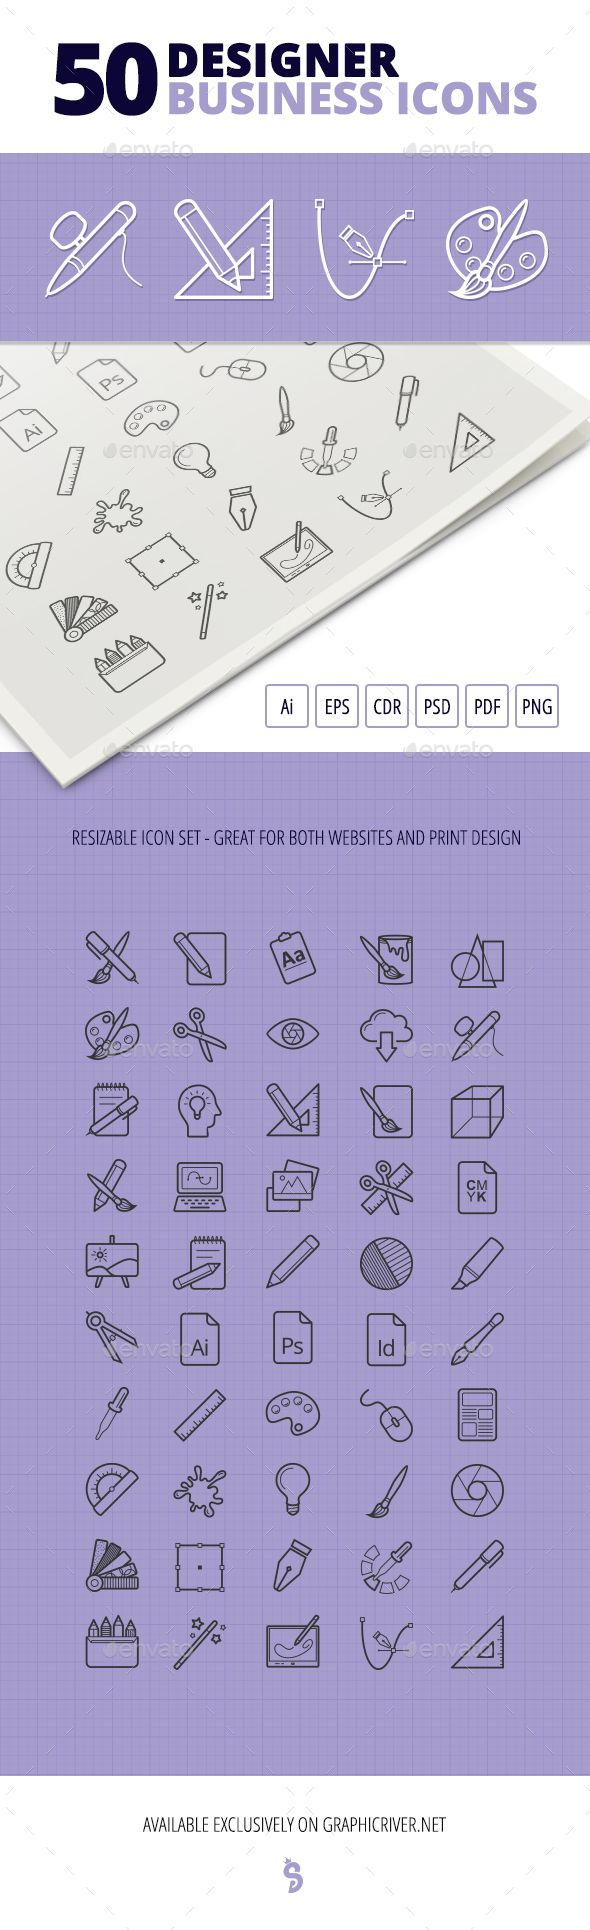 50 Designer Business #Icons - #Business Icons Download here:  https://graphicriver.net/item/50-designer-business-icons/19529943?ref=alena994